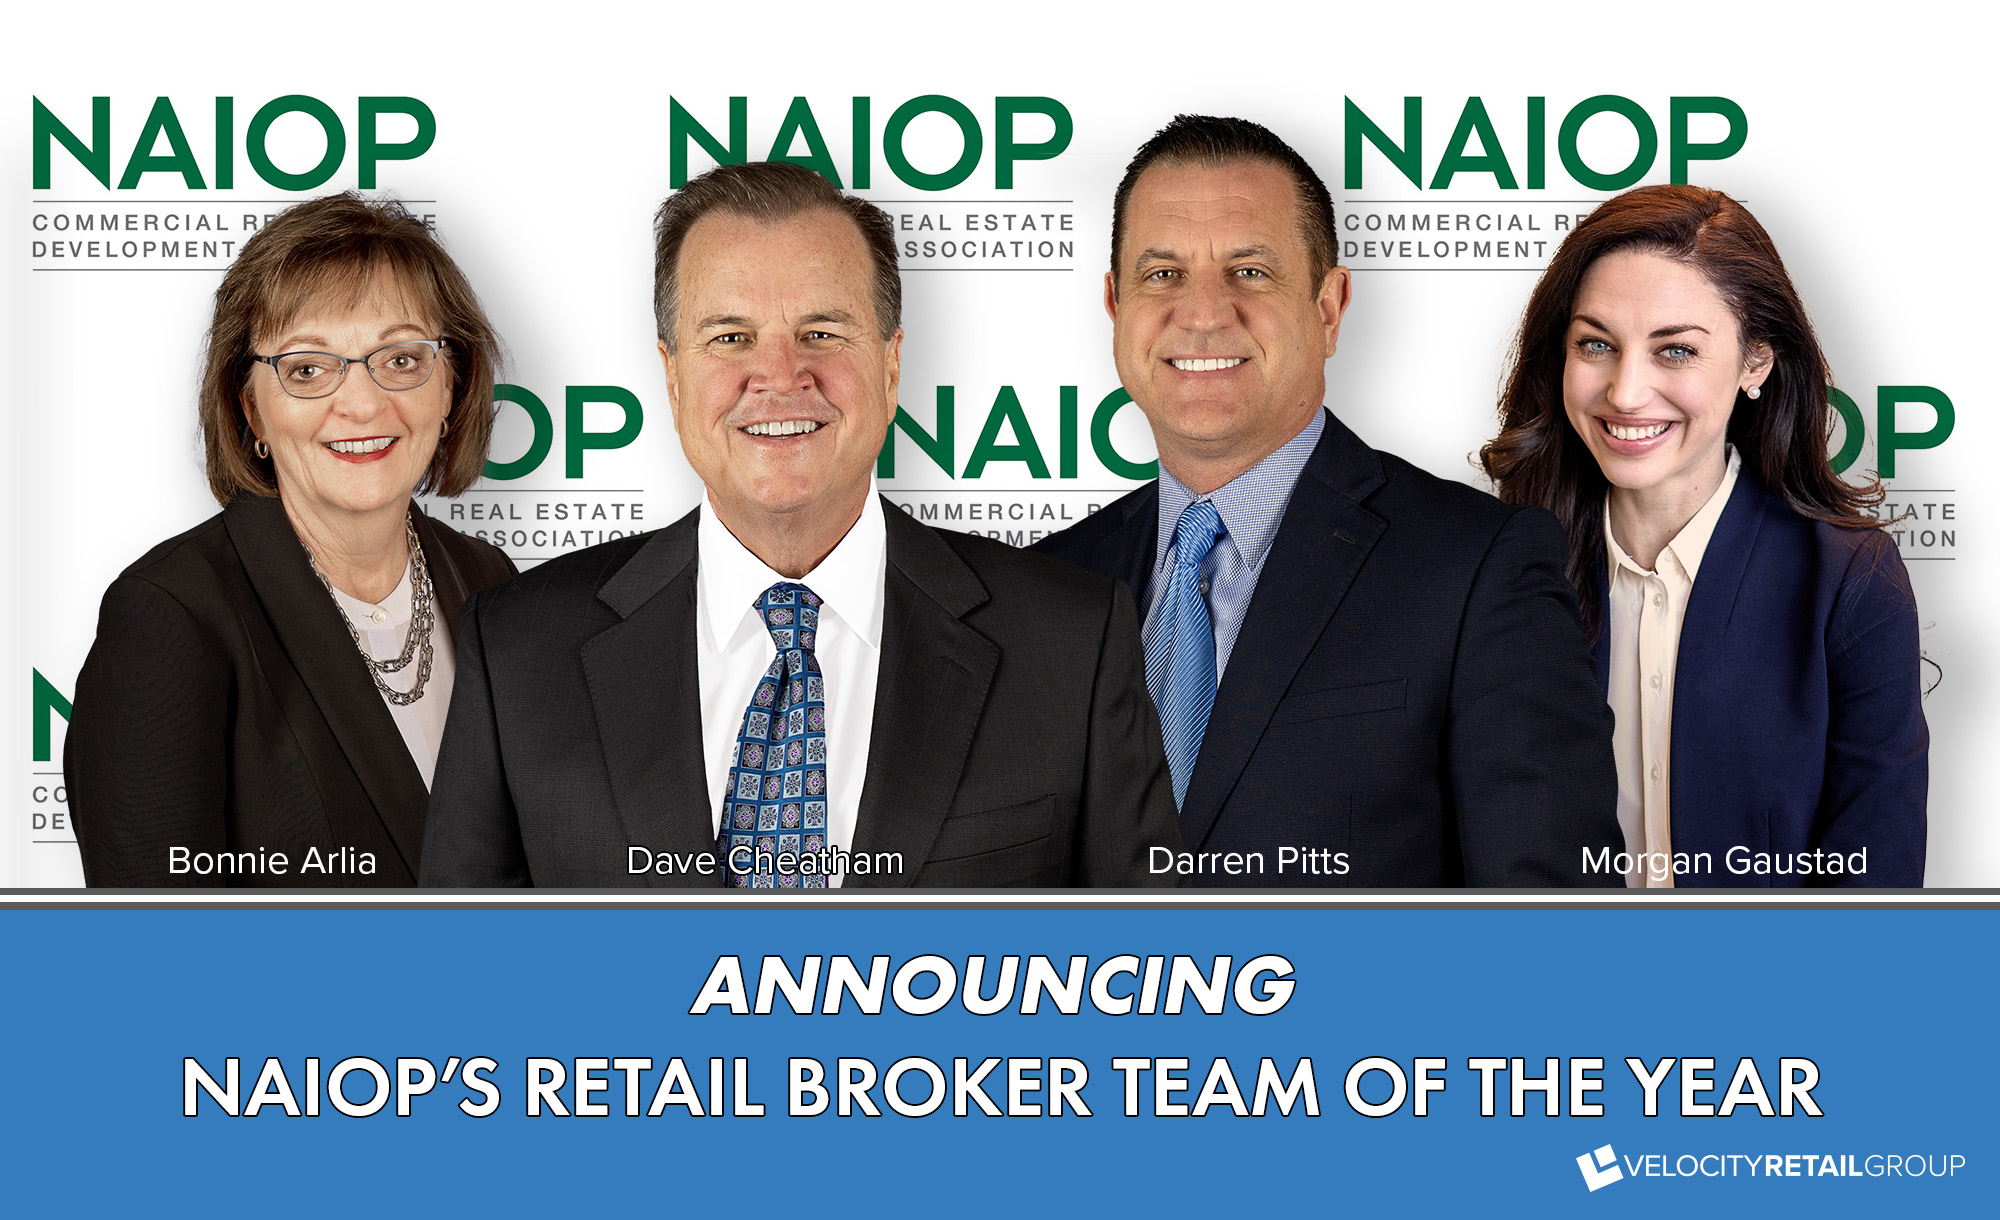 NAIOP Retail Team of the Year